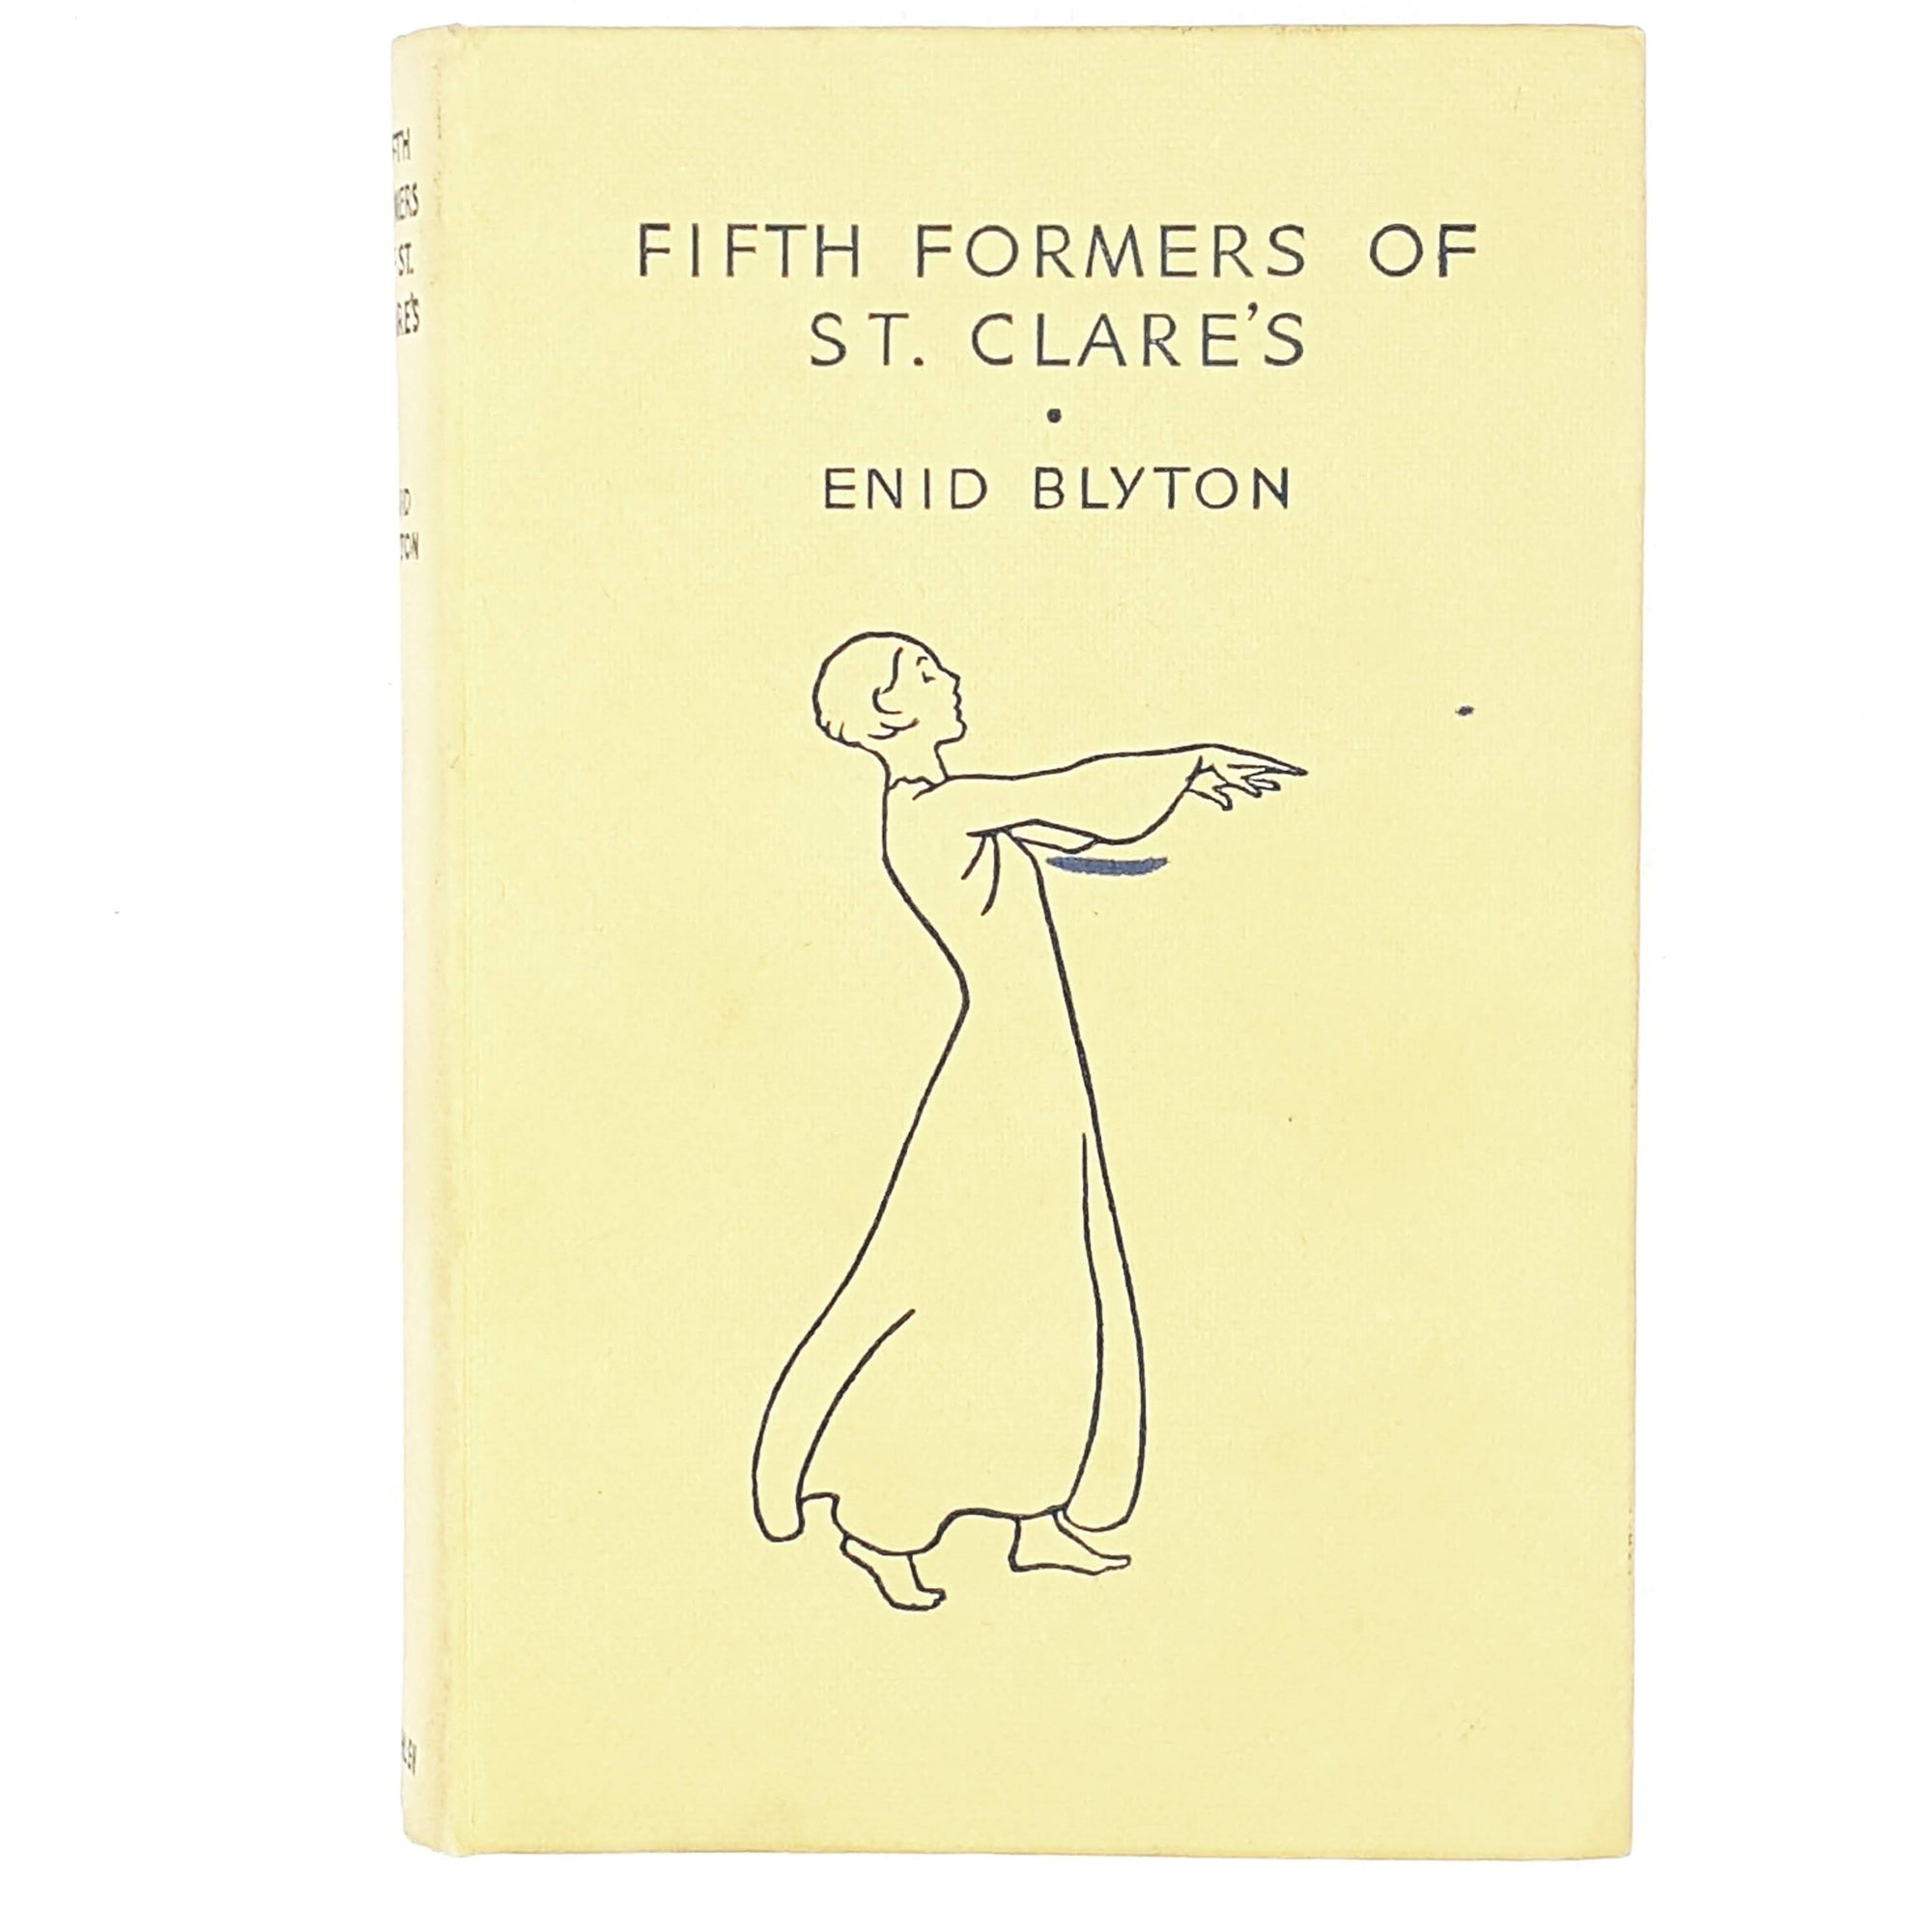 Illustrated Enid Blyton's Fifth Formers of St. Clare's 1962